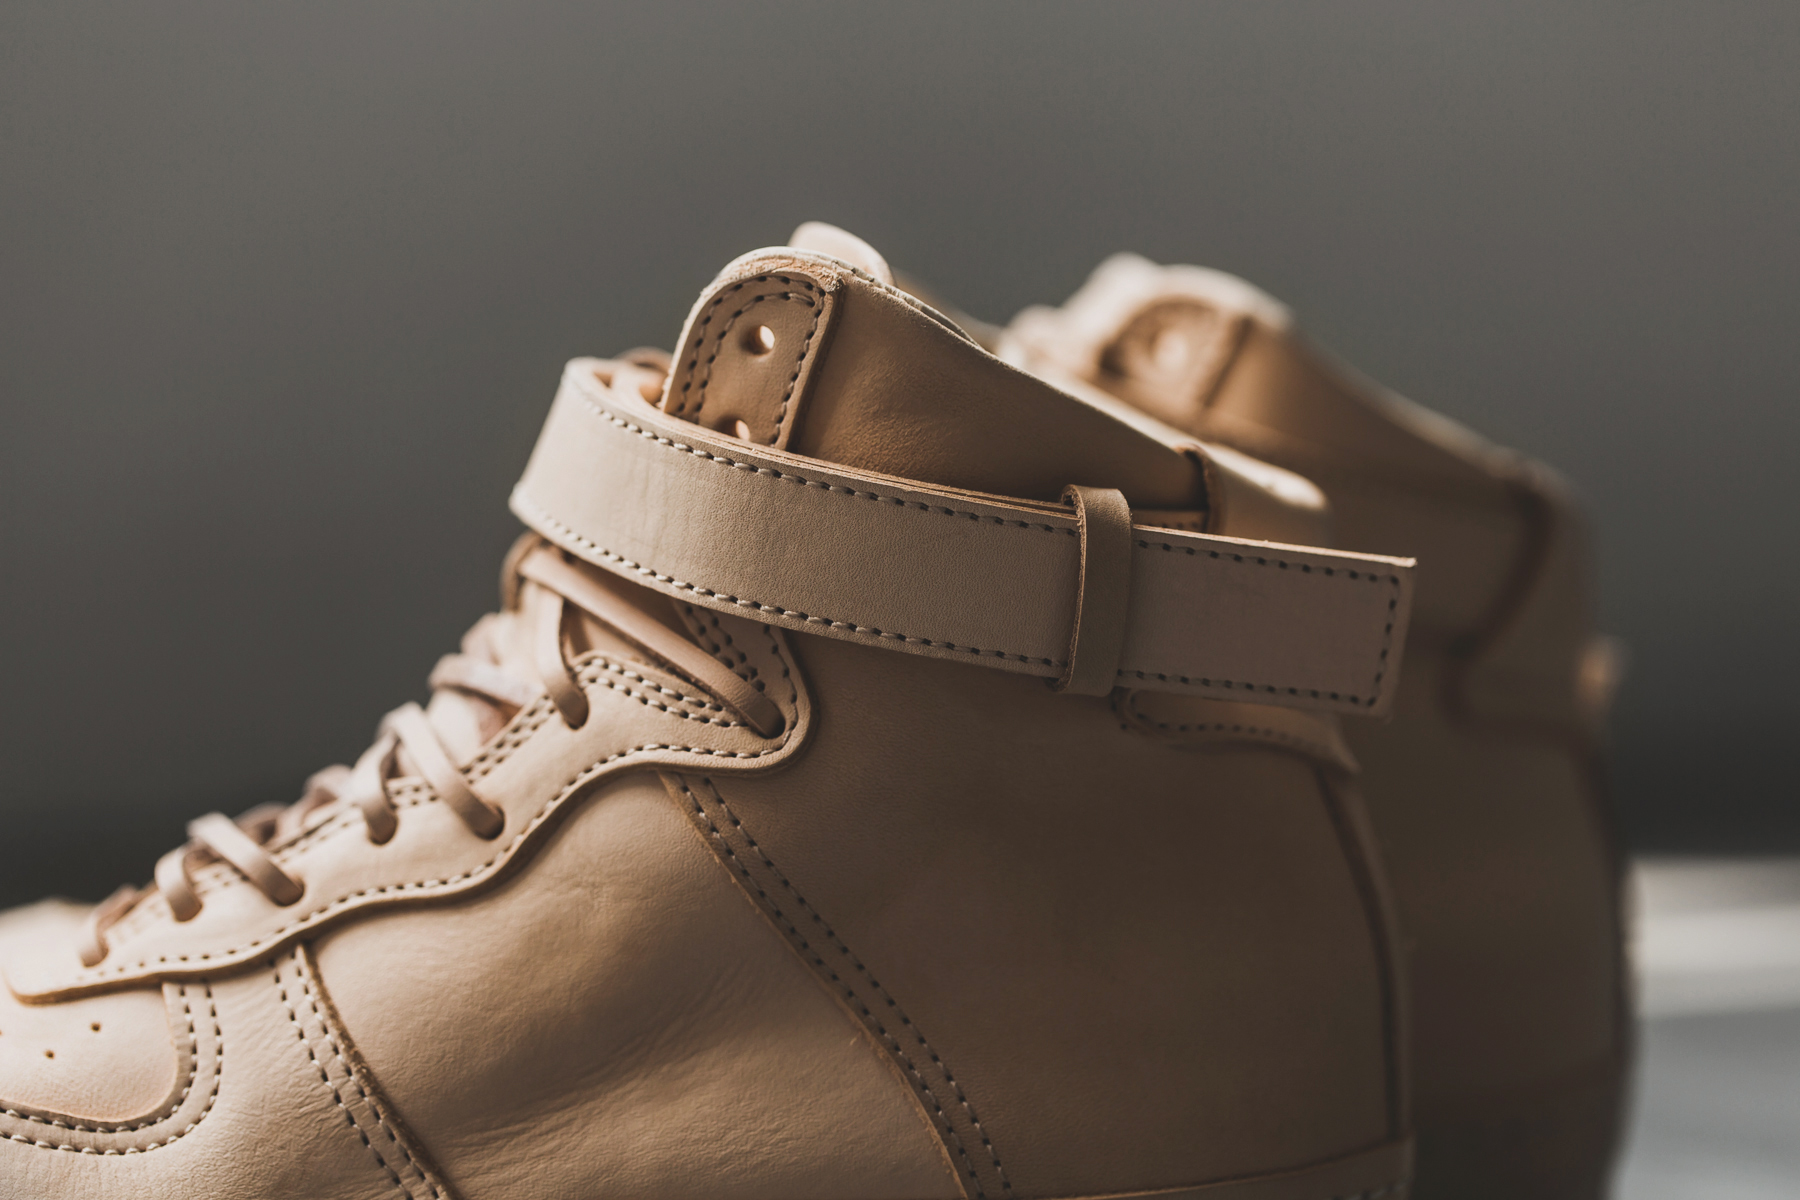 http://hypebeast.com/2014/3/hender-scheme-manual-industrial-products-01-sneaker